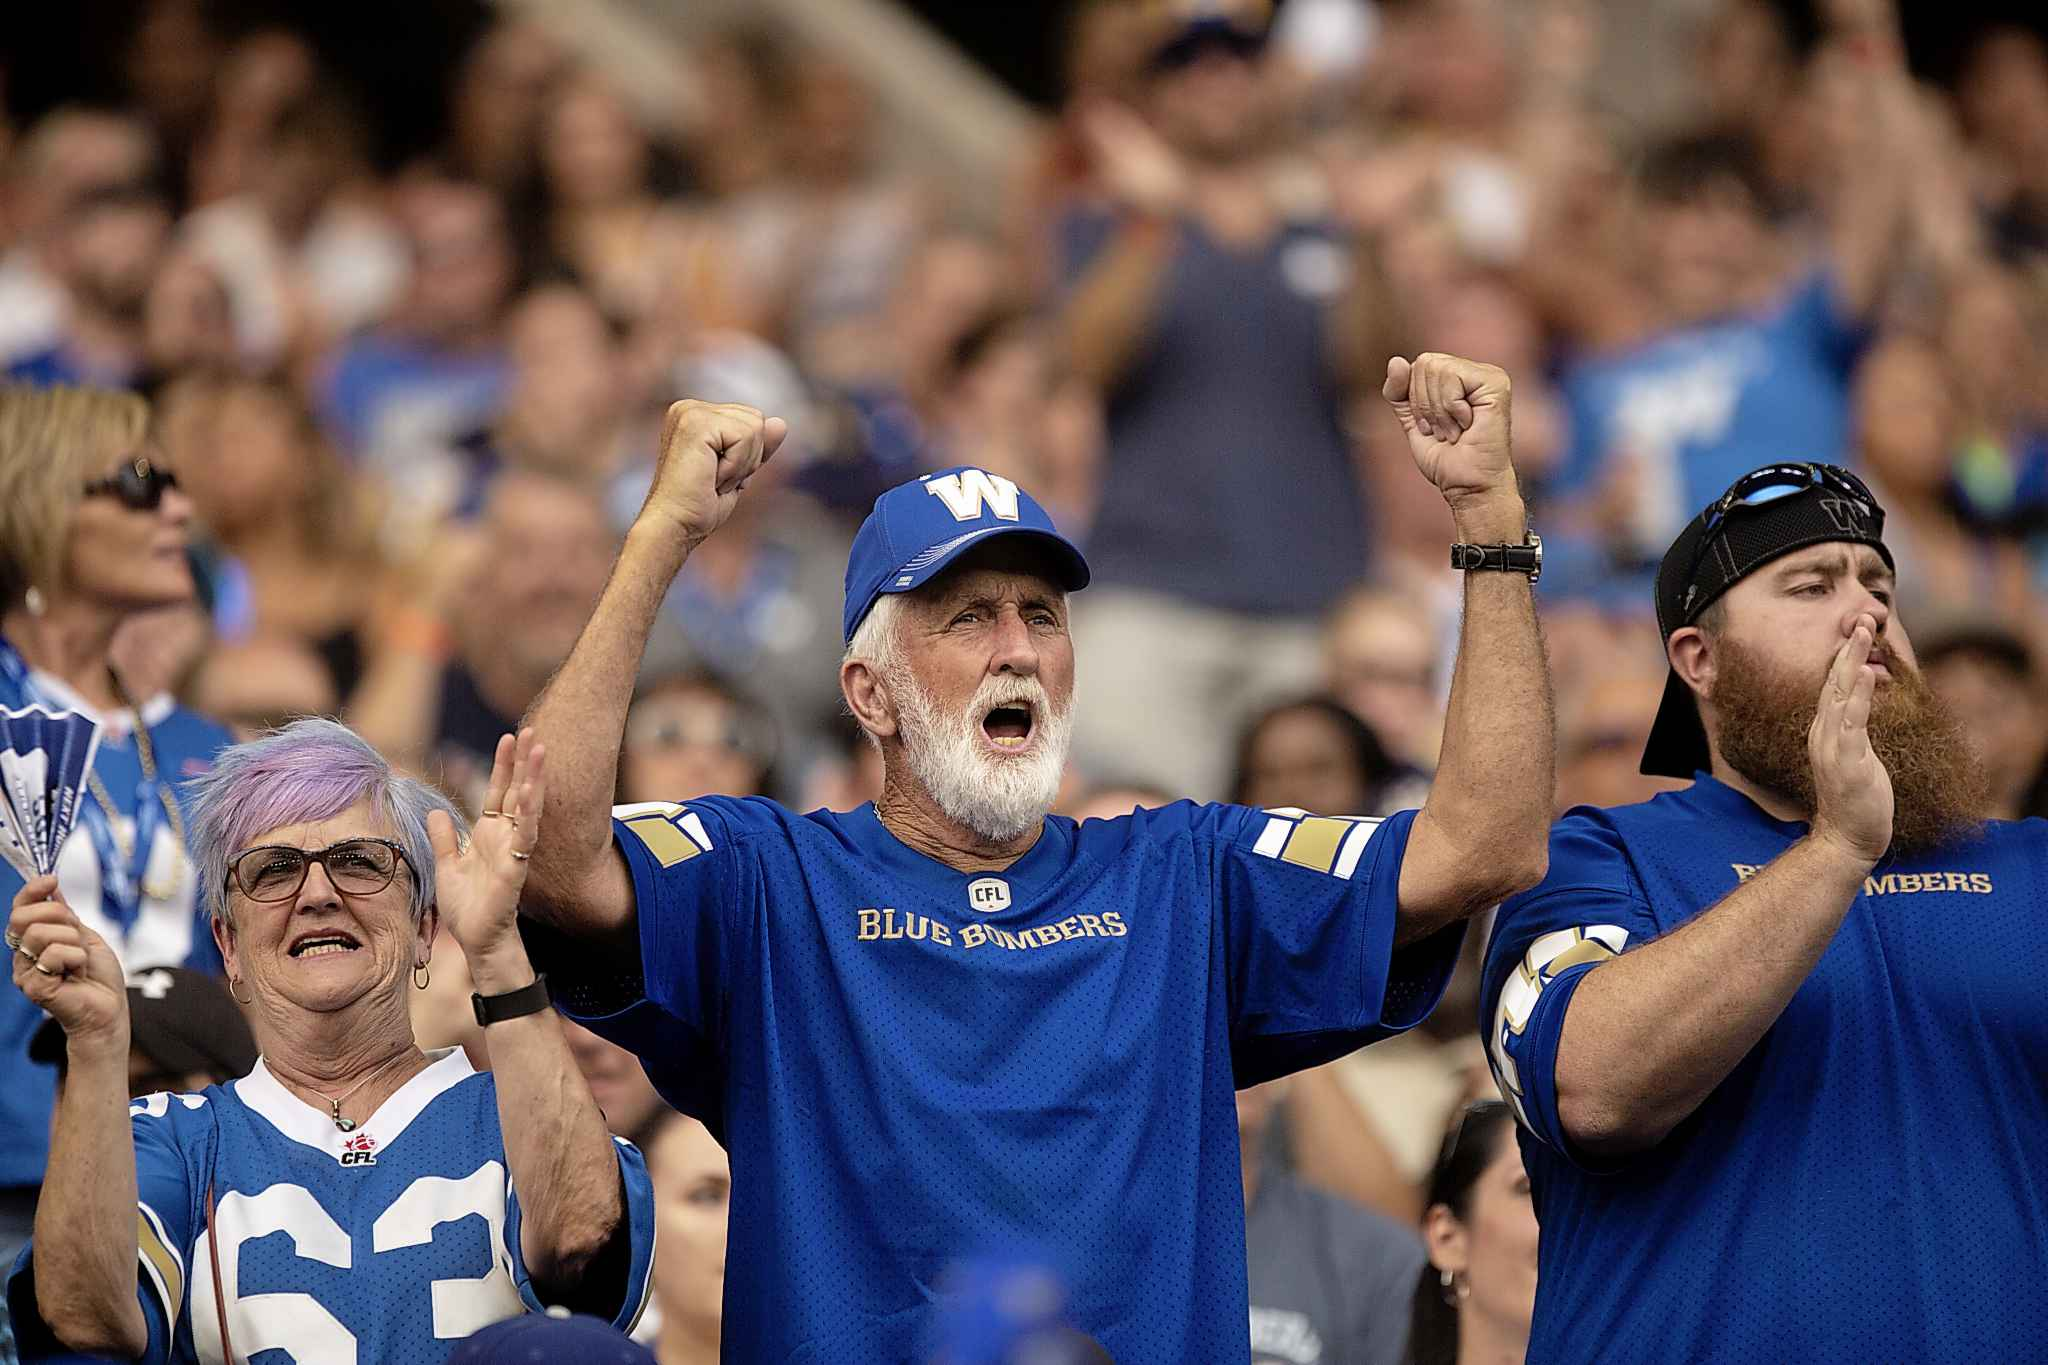 Fans liked what they saw early from the Bombers Friday. (ANDREW RYAN / WINNIPEG FREE PRESS)